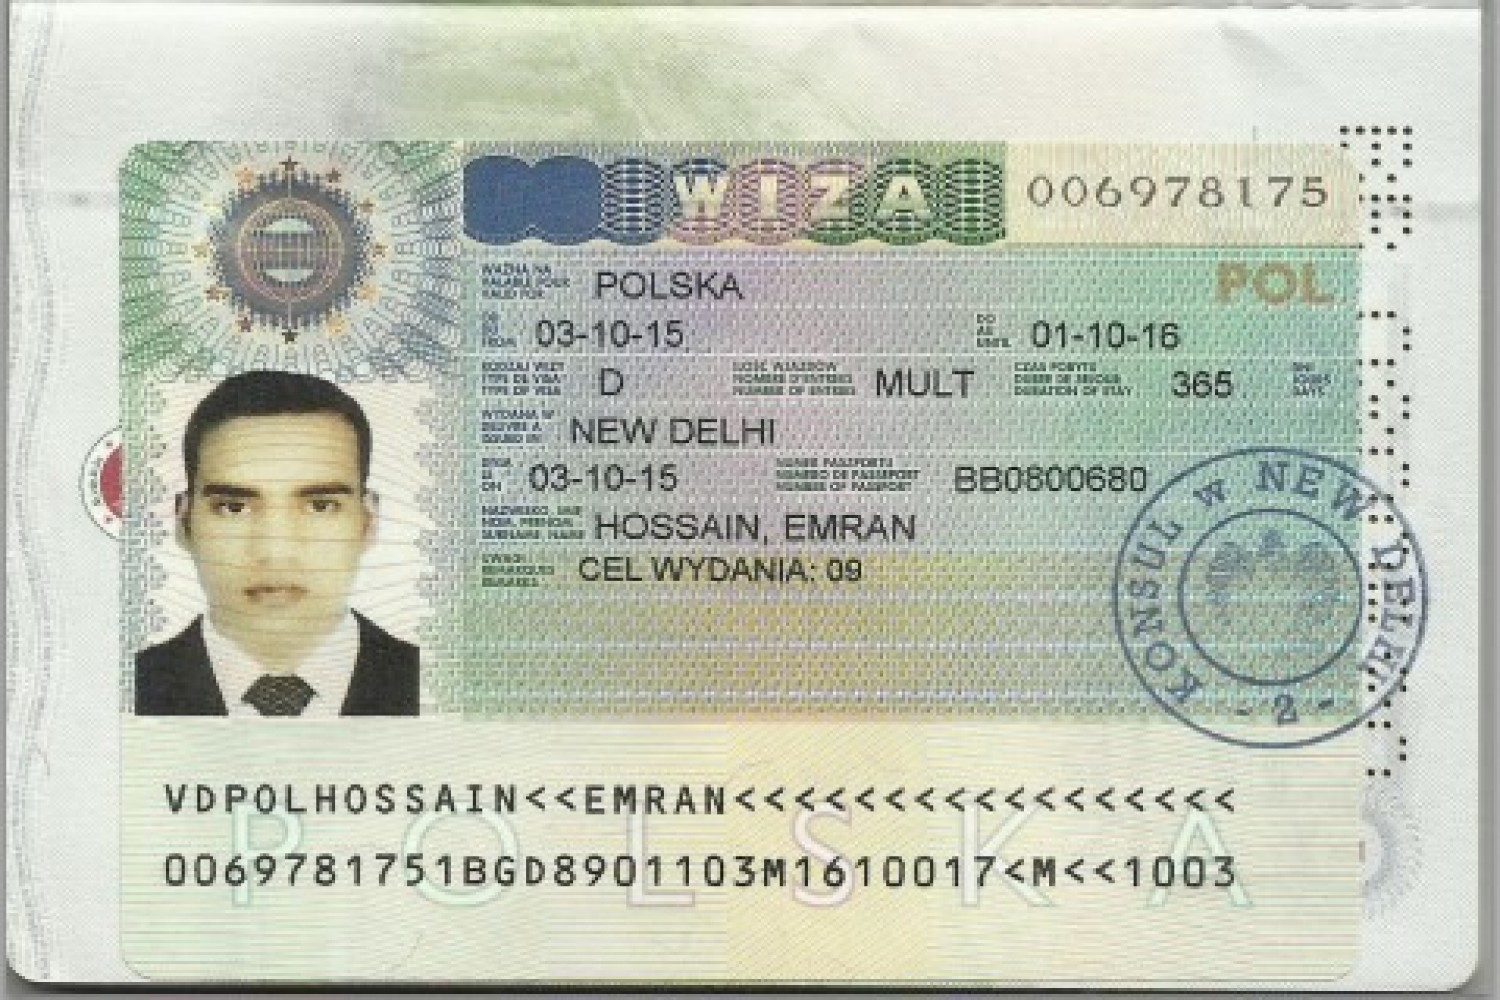 d45928f03d9e213008b7bd091c7479e9 Visa Application Form For Canada Student on usa visa form, canada employment, canada visa medical form, canada tax form, adventure in letter form, united states embassy application form, spain visa form, canada tourism, canada work permit, parent contact information form, green card application form, canada home, cyprus visa form, canada citizenship form, canada immigration form, canada visitor record, laos visa on arrival form, canada registration form,